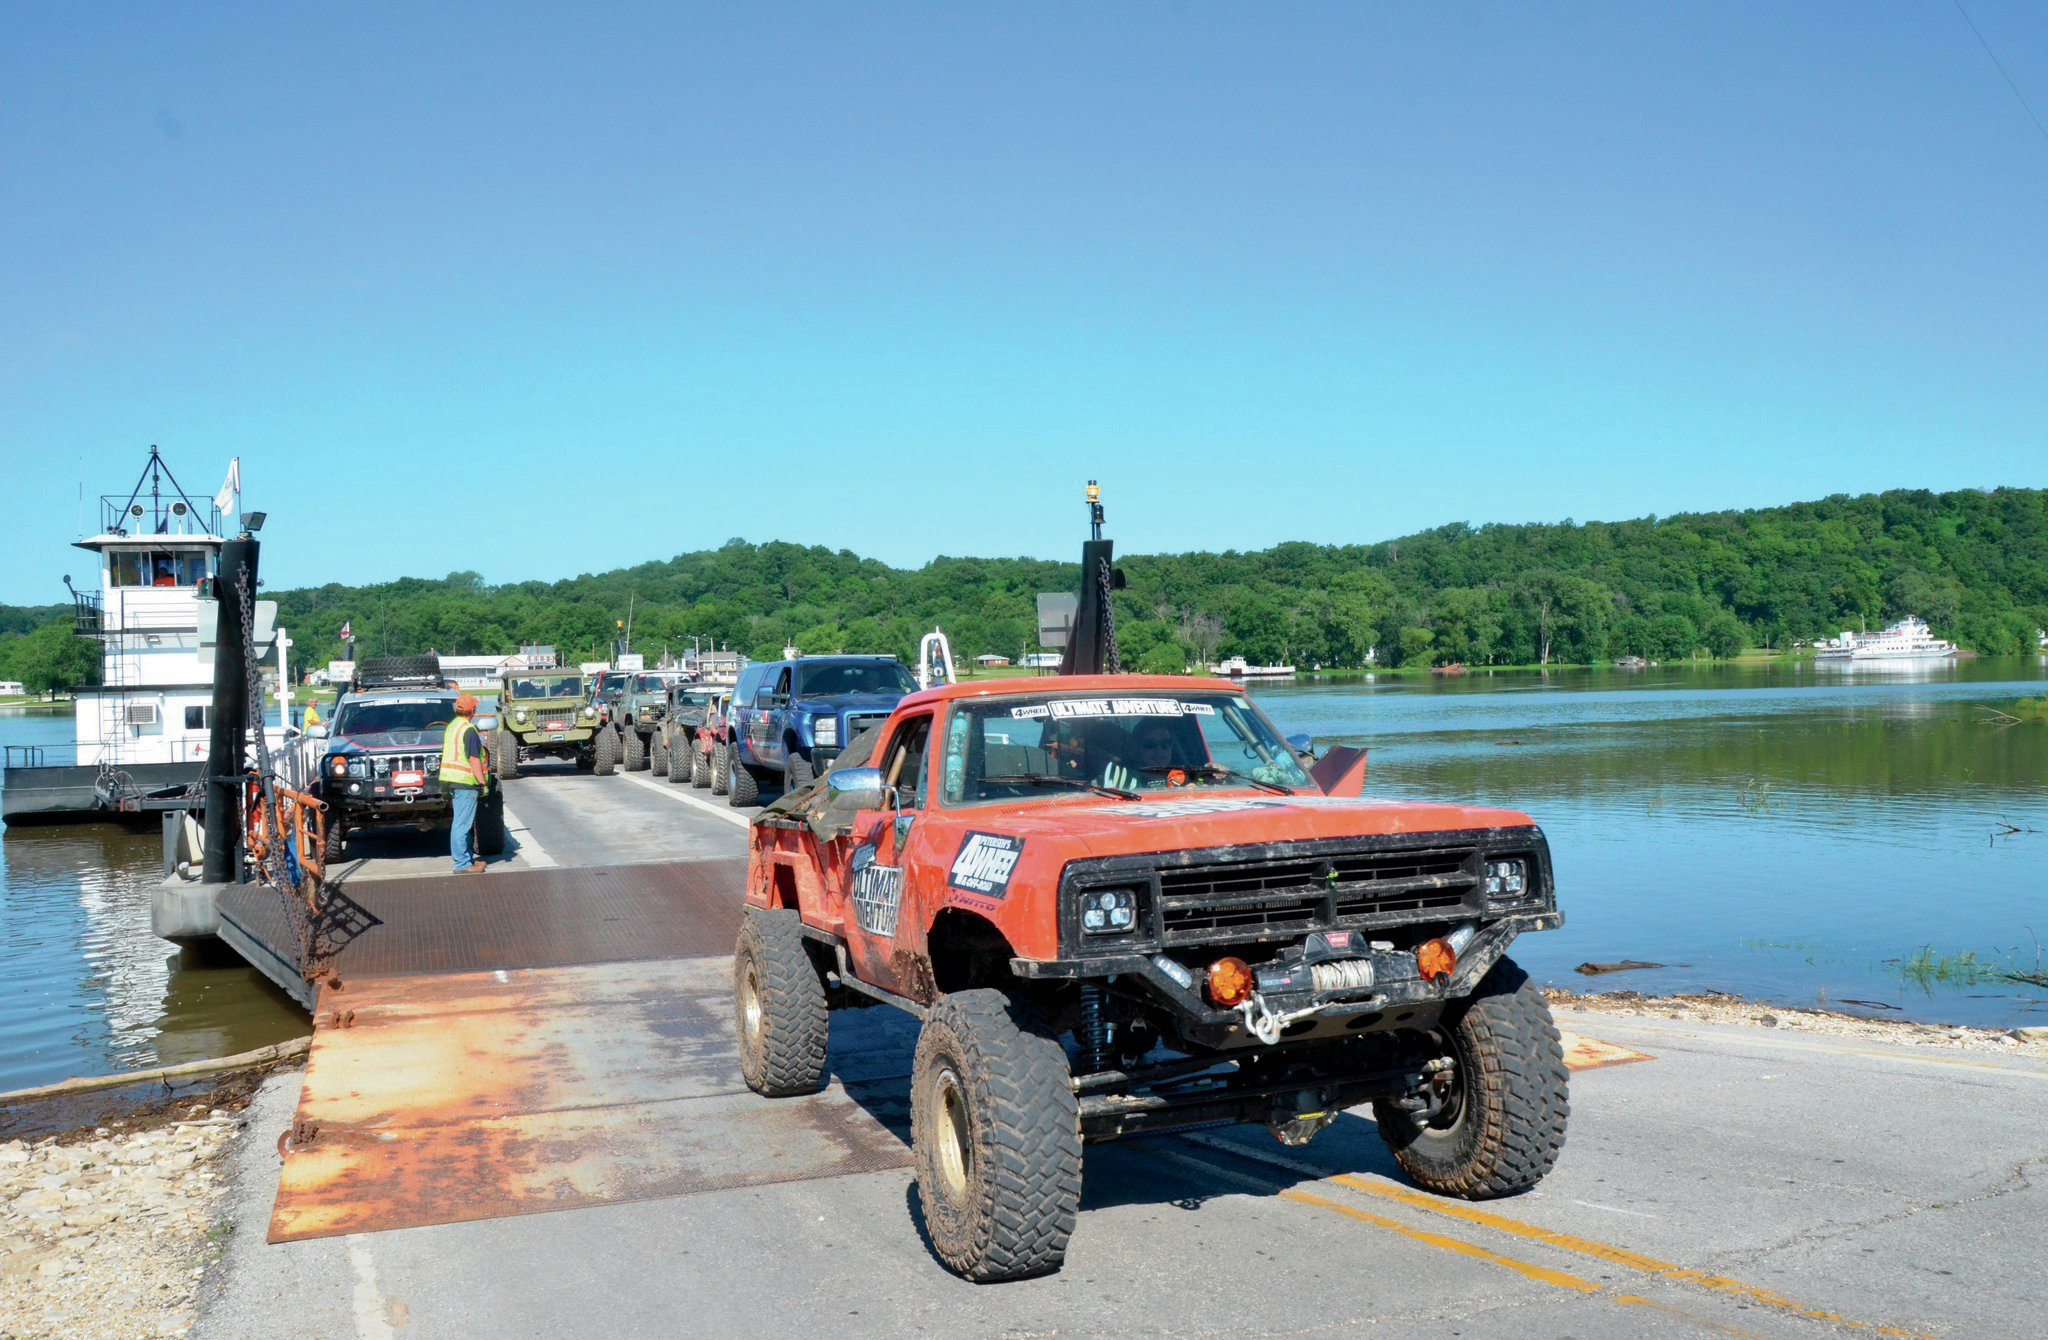 Packing a ferry full of UA rigs